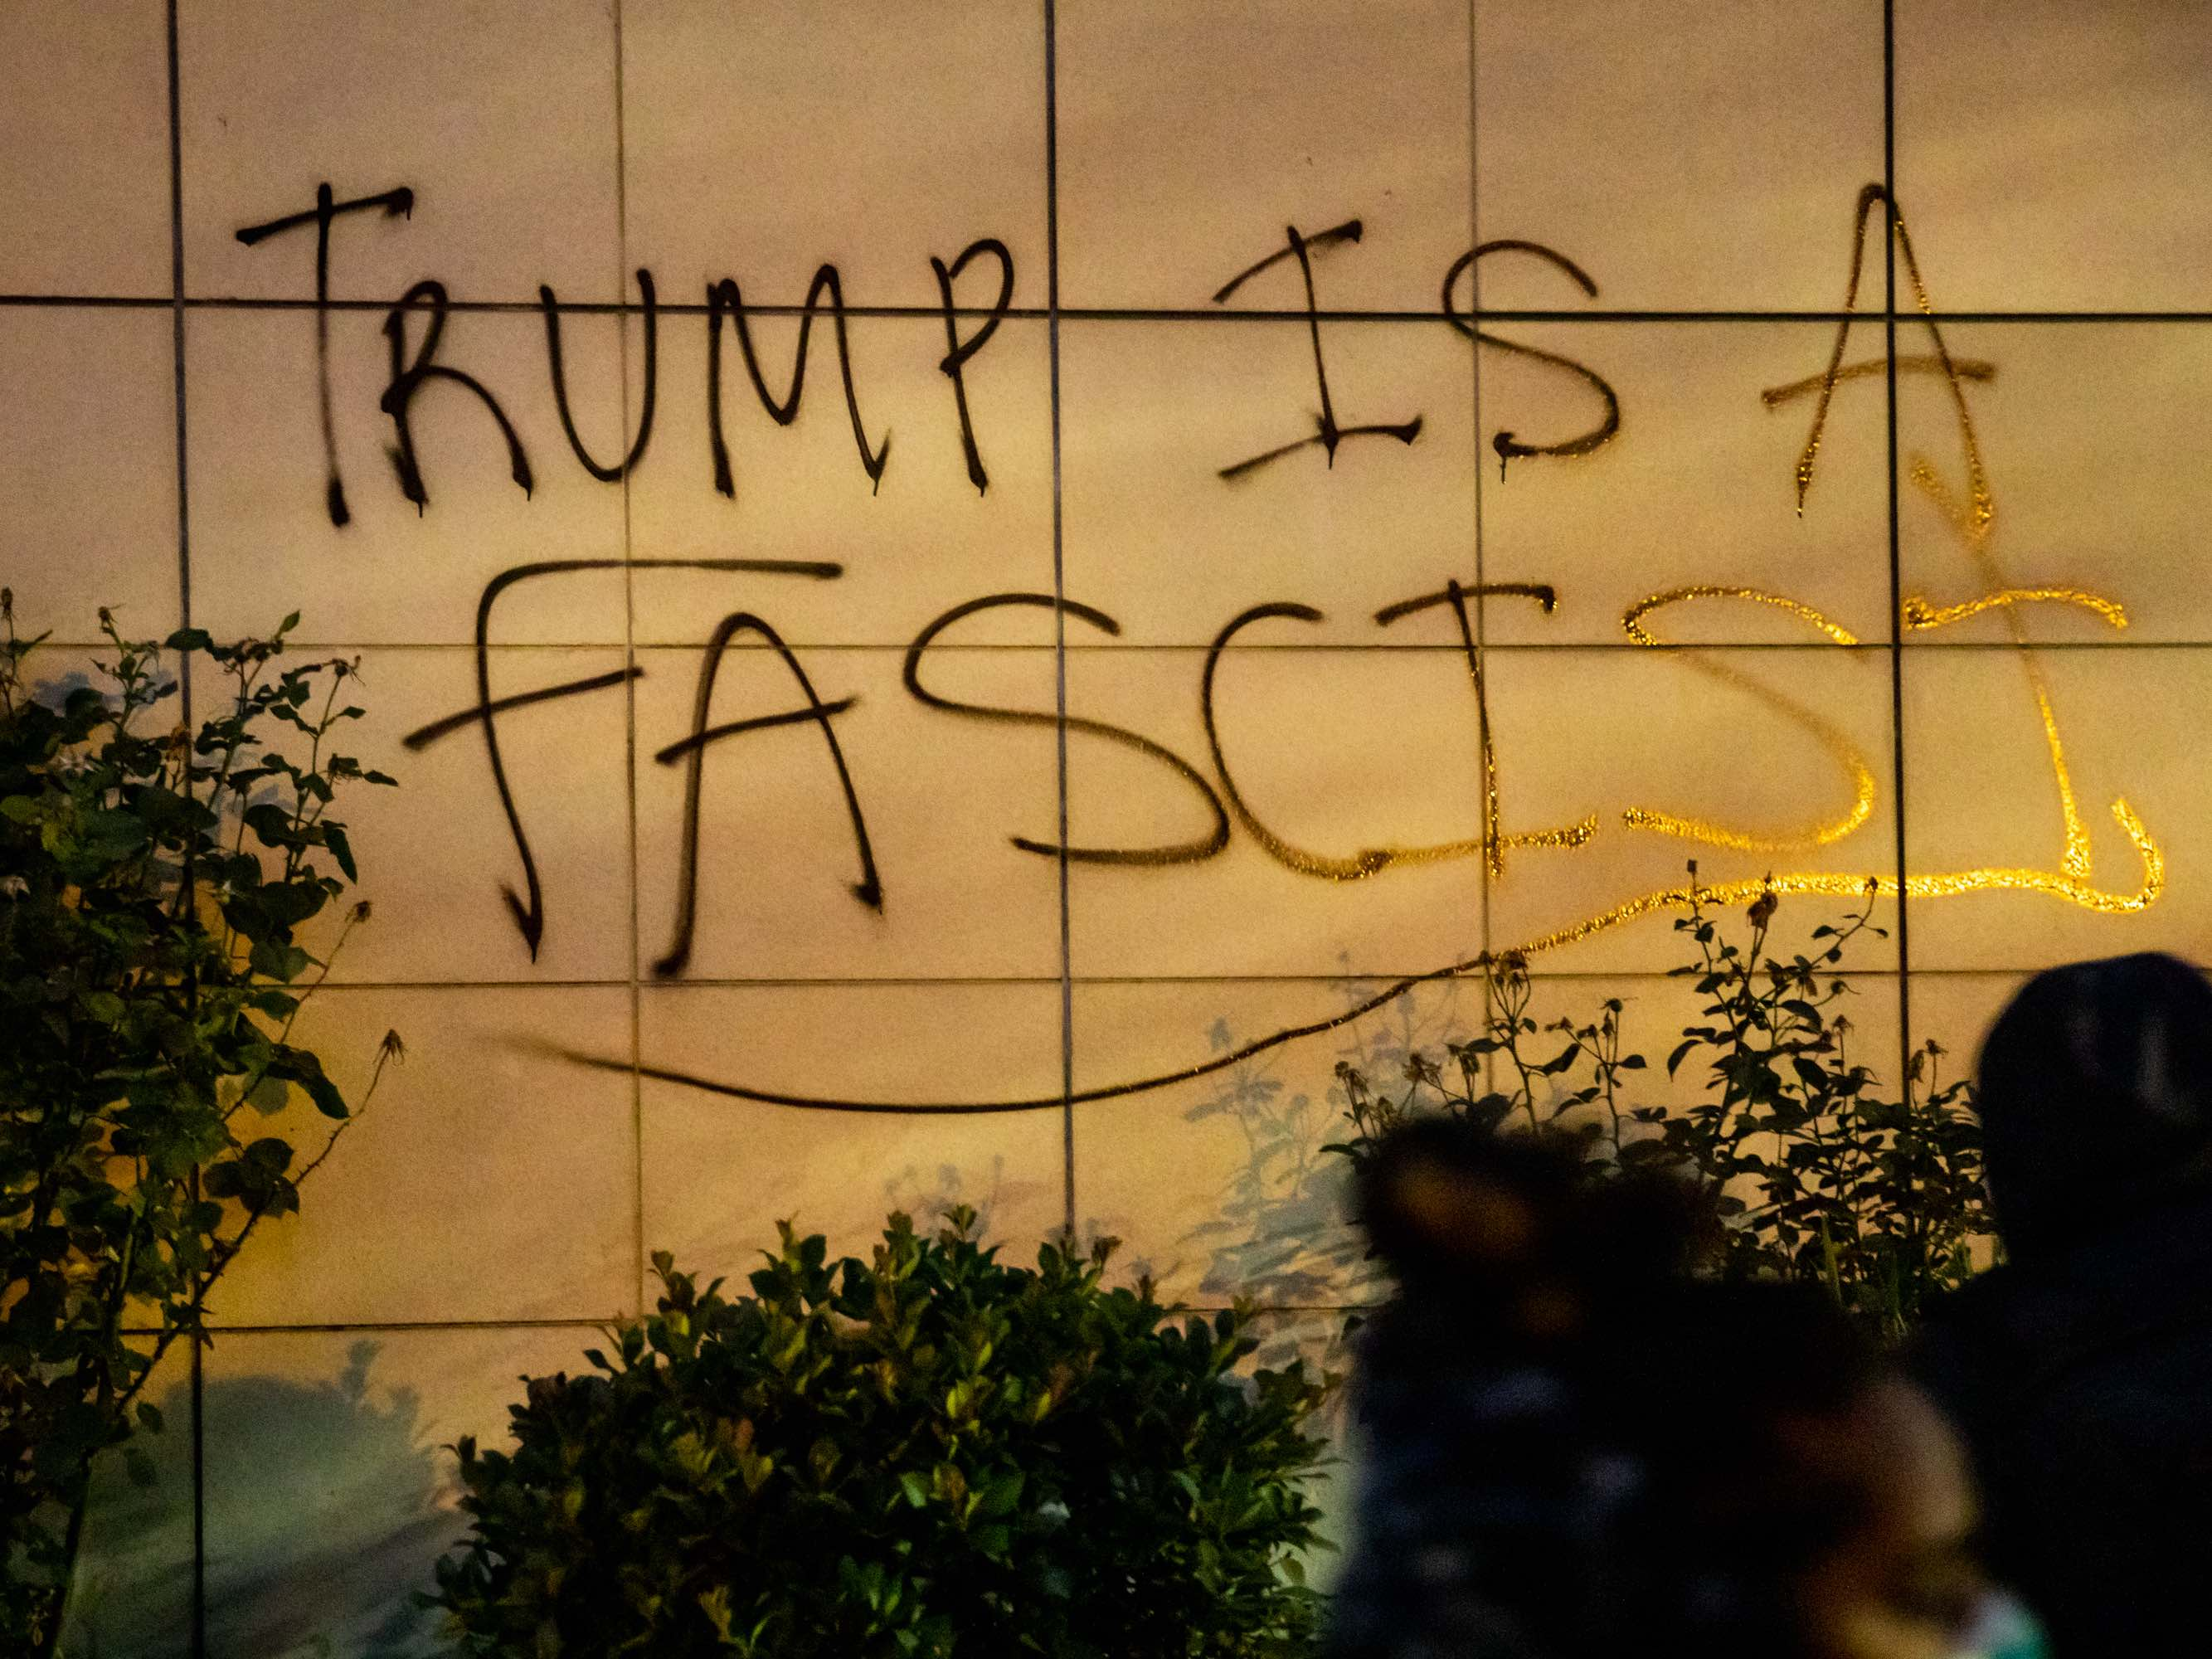 Trump fascist graffiti Oakland (Natasha Moustache / Getty)